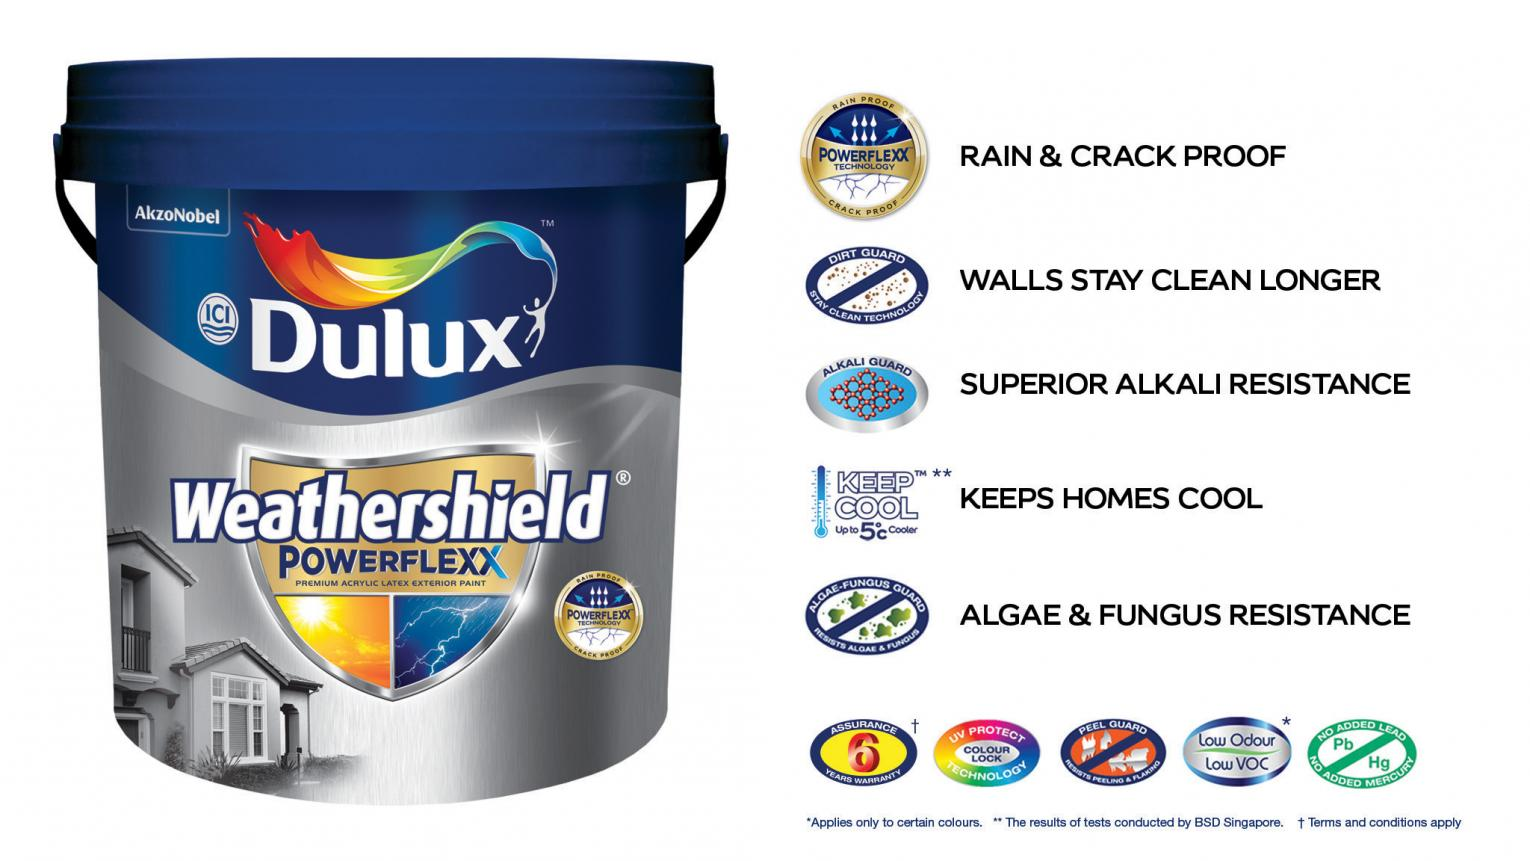 Weathershield Powerflexx Unique Selling Points